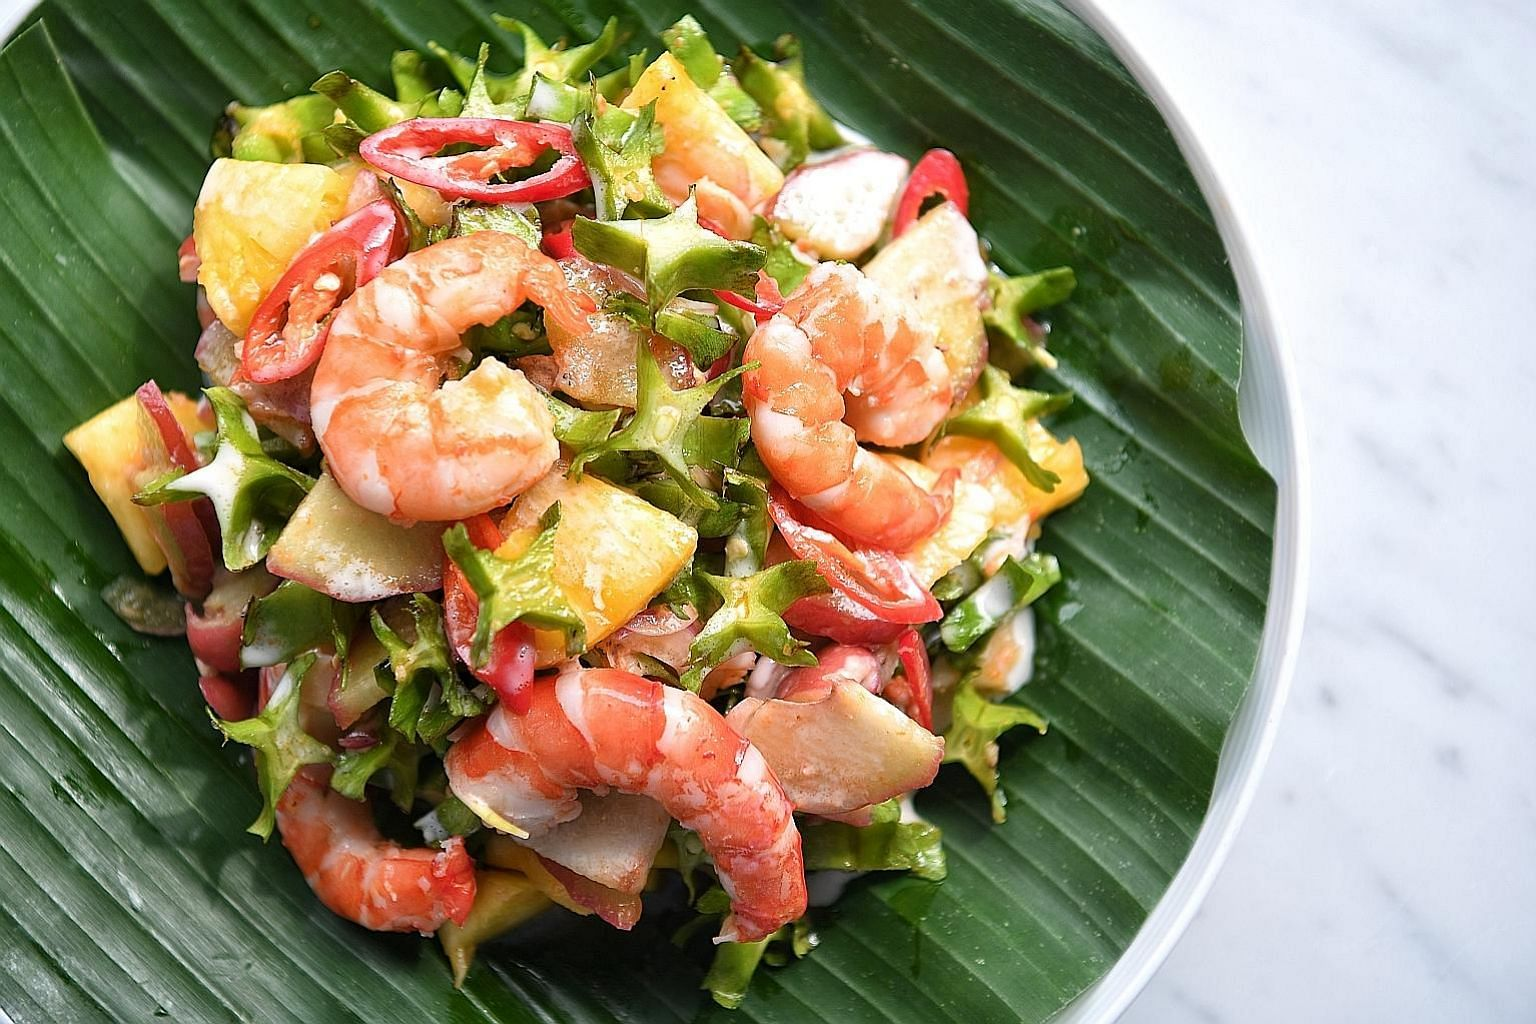 Chilli sauce (left) and cinchalok or fermented shrimp (right) add heat and umami to the salad dressing. A spicy yet refreshing prawn salad made with wing beans (below) as the base.